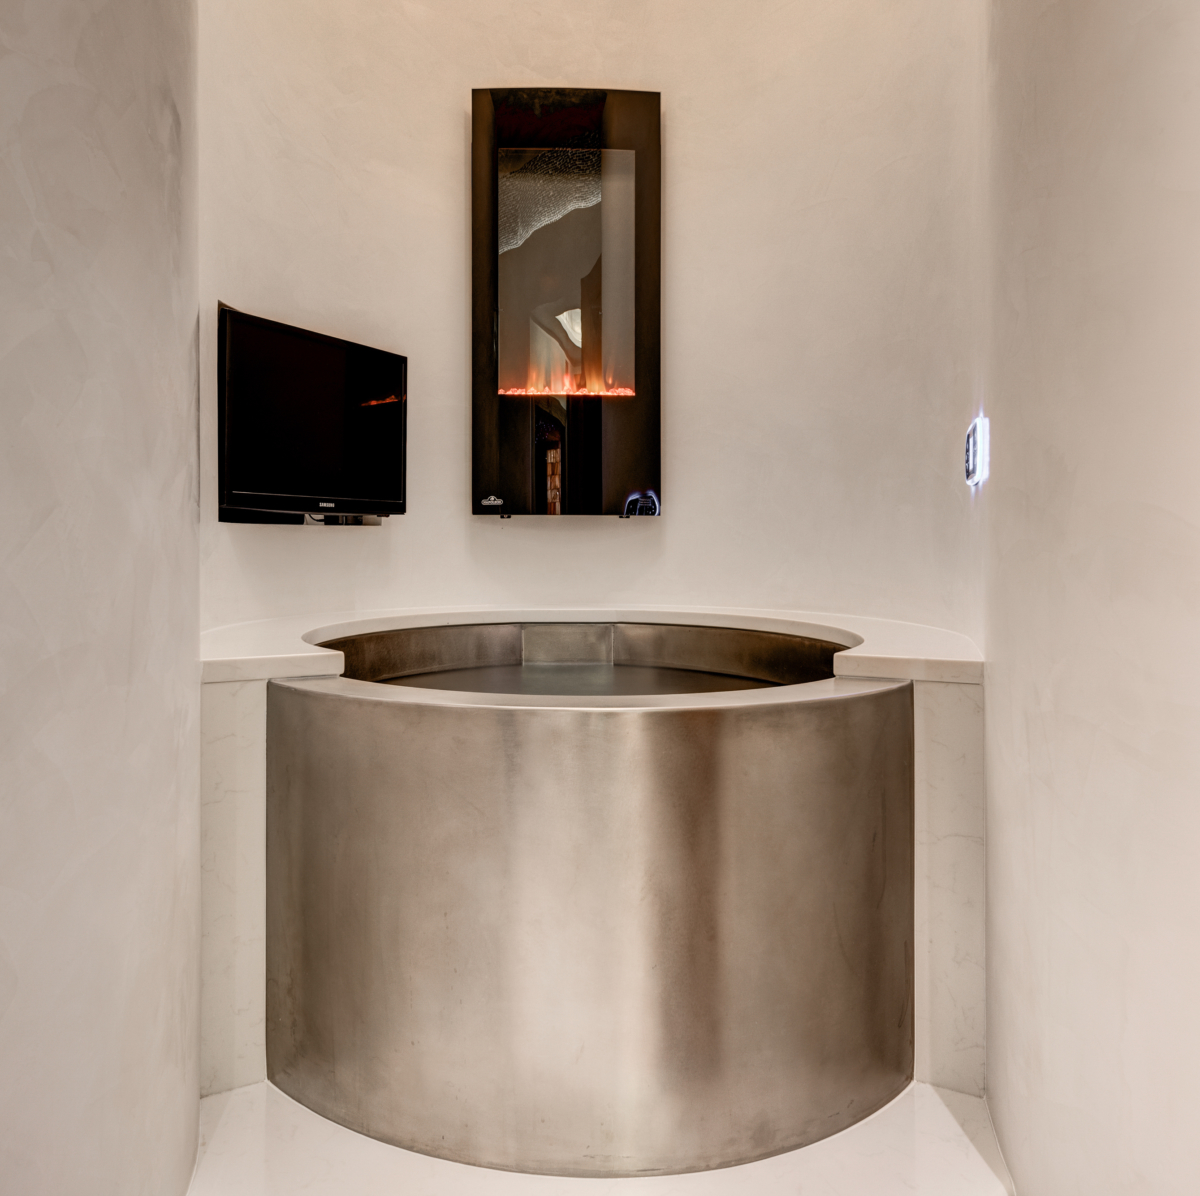 Style Developments Bathroom Remodel with a Stainless Steele Tub